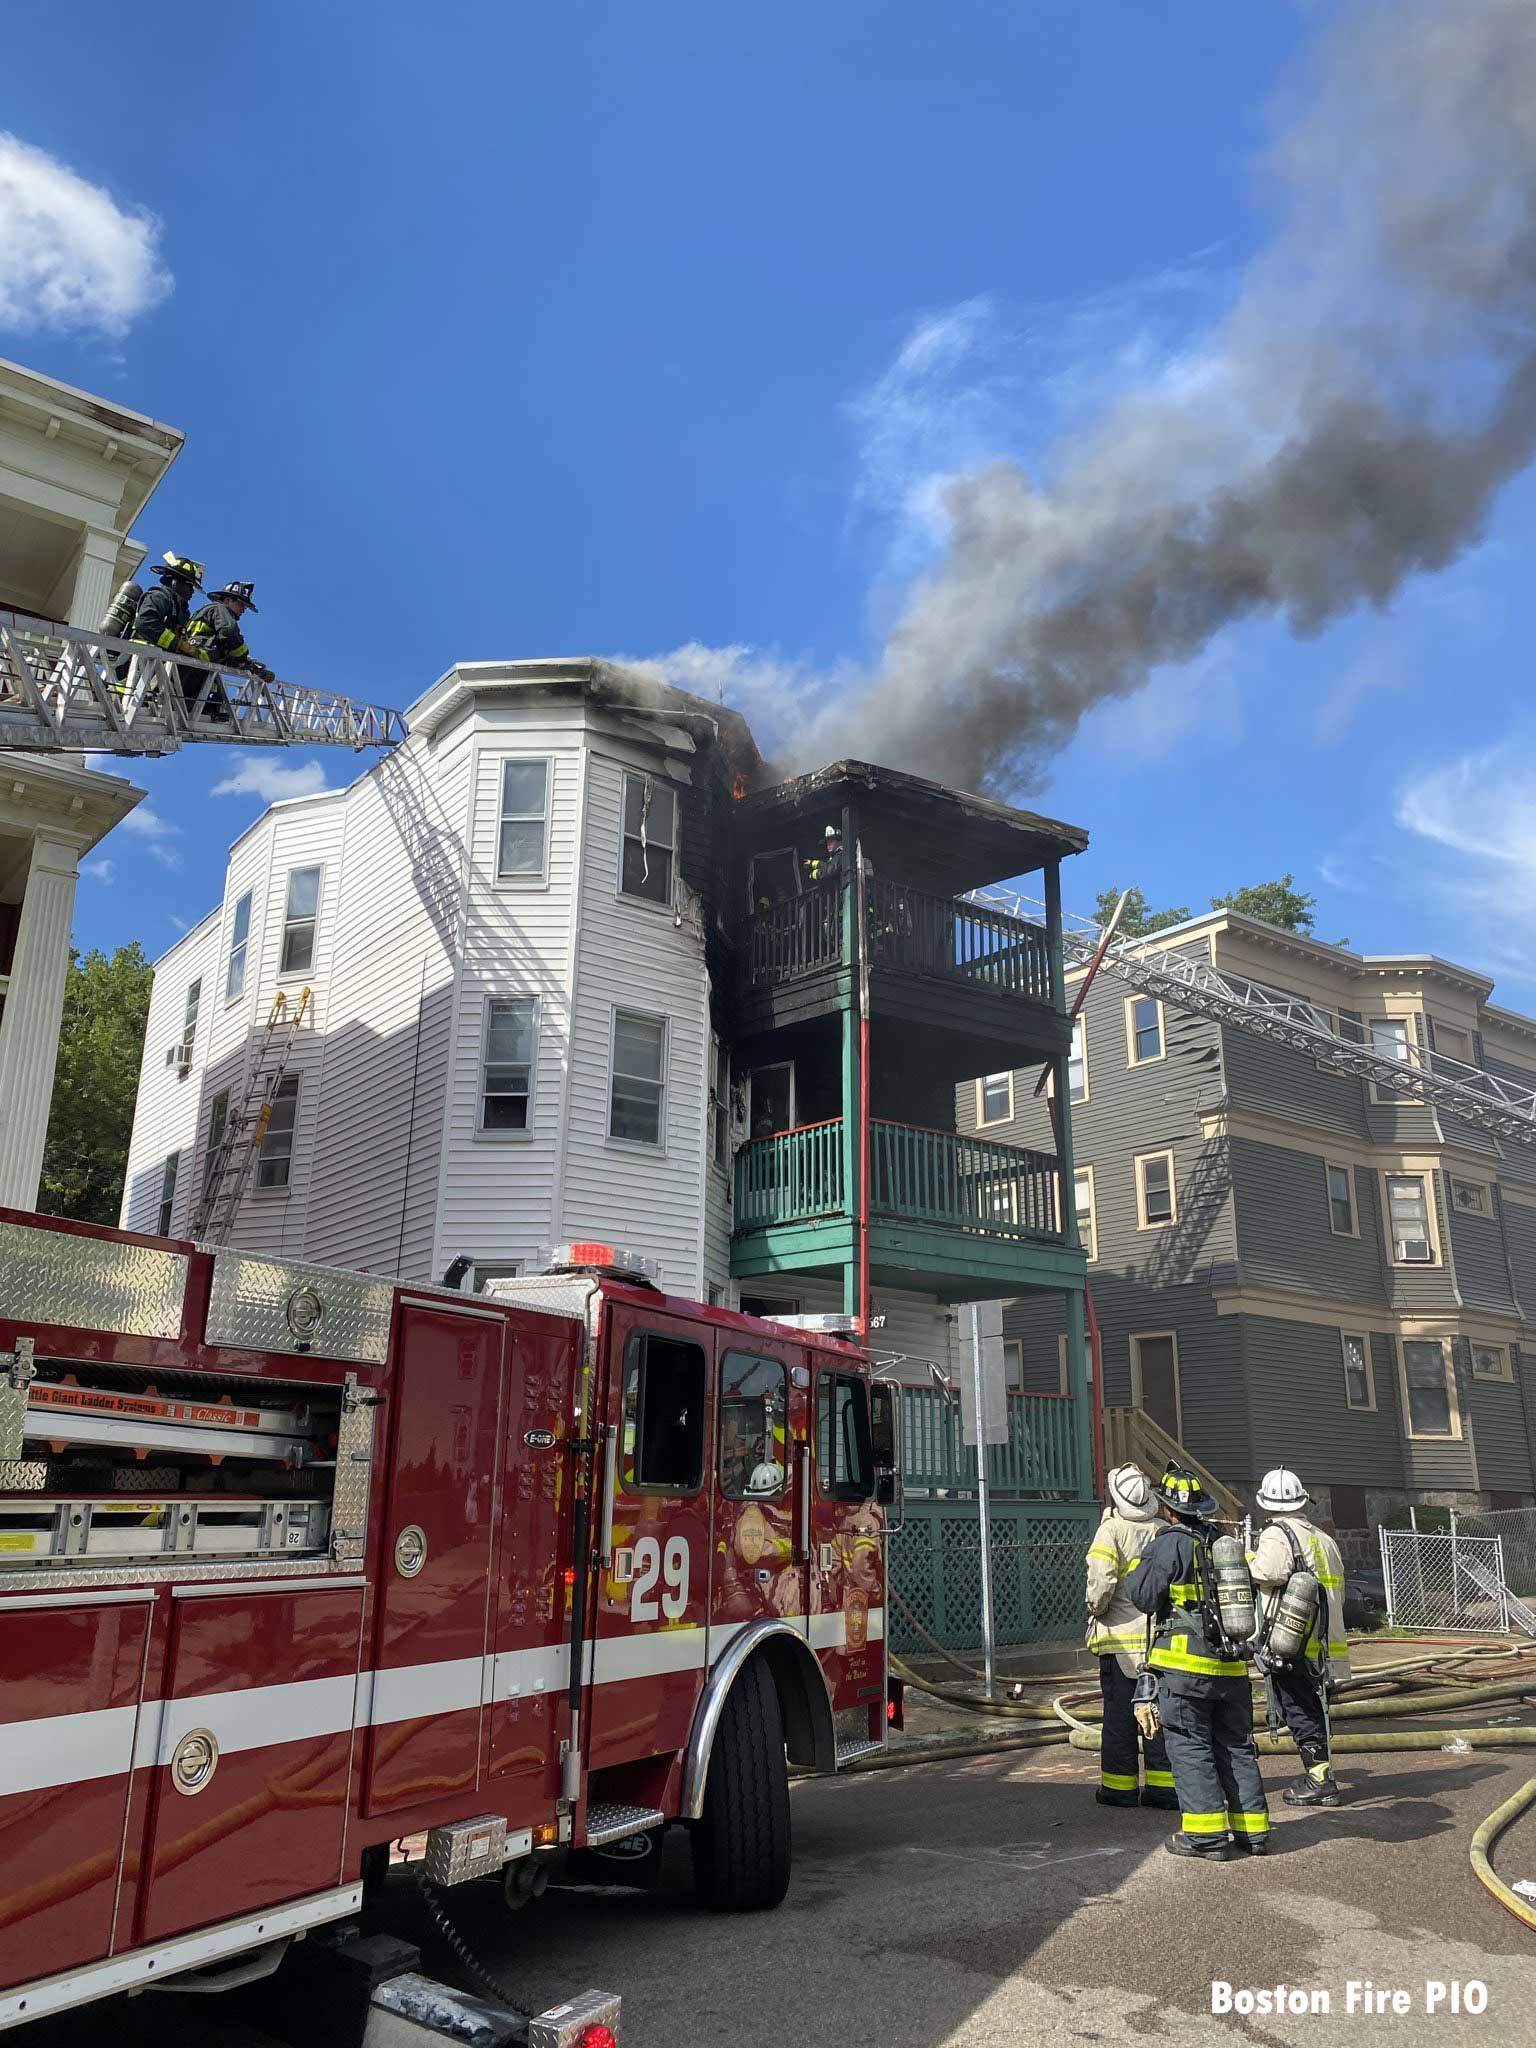 Smoke shows from the roof of the building with Boston fire apparatus and command staff in the front